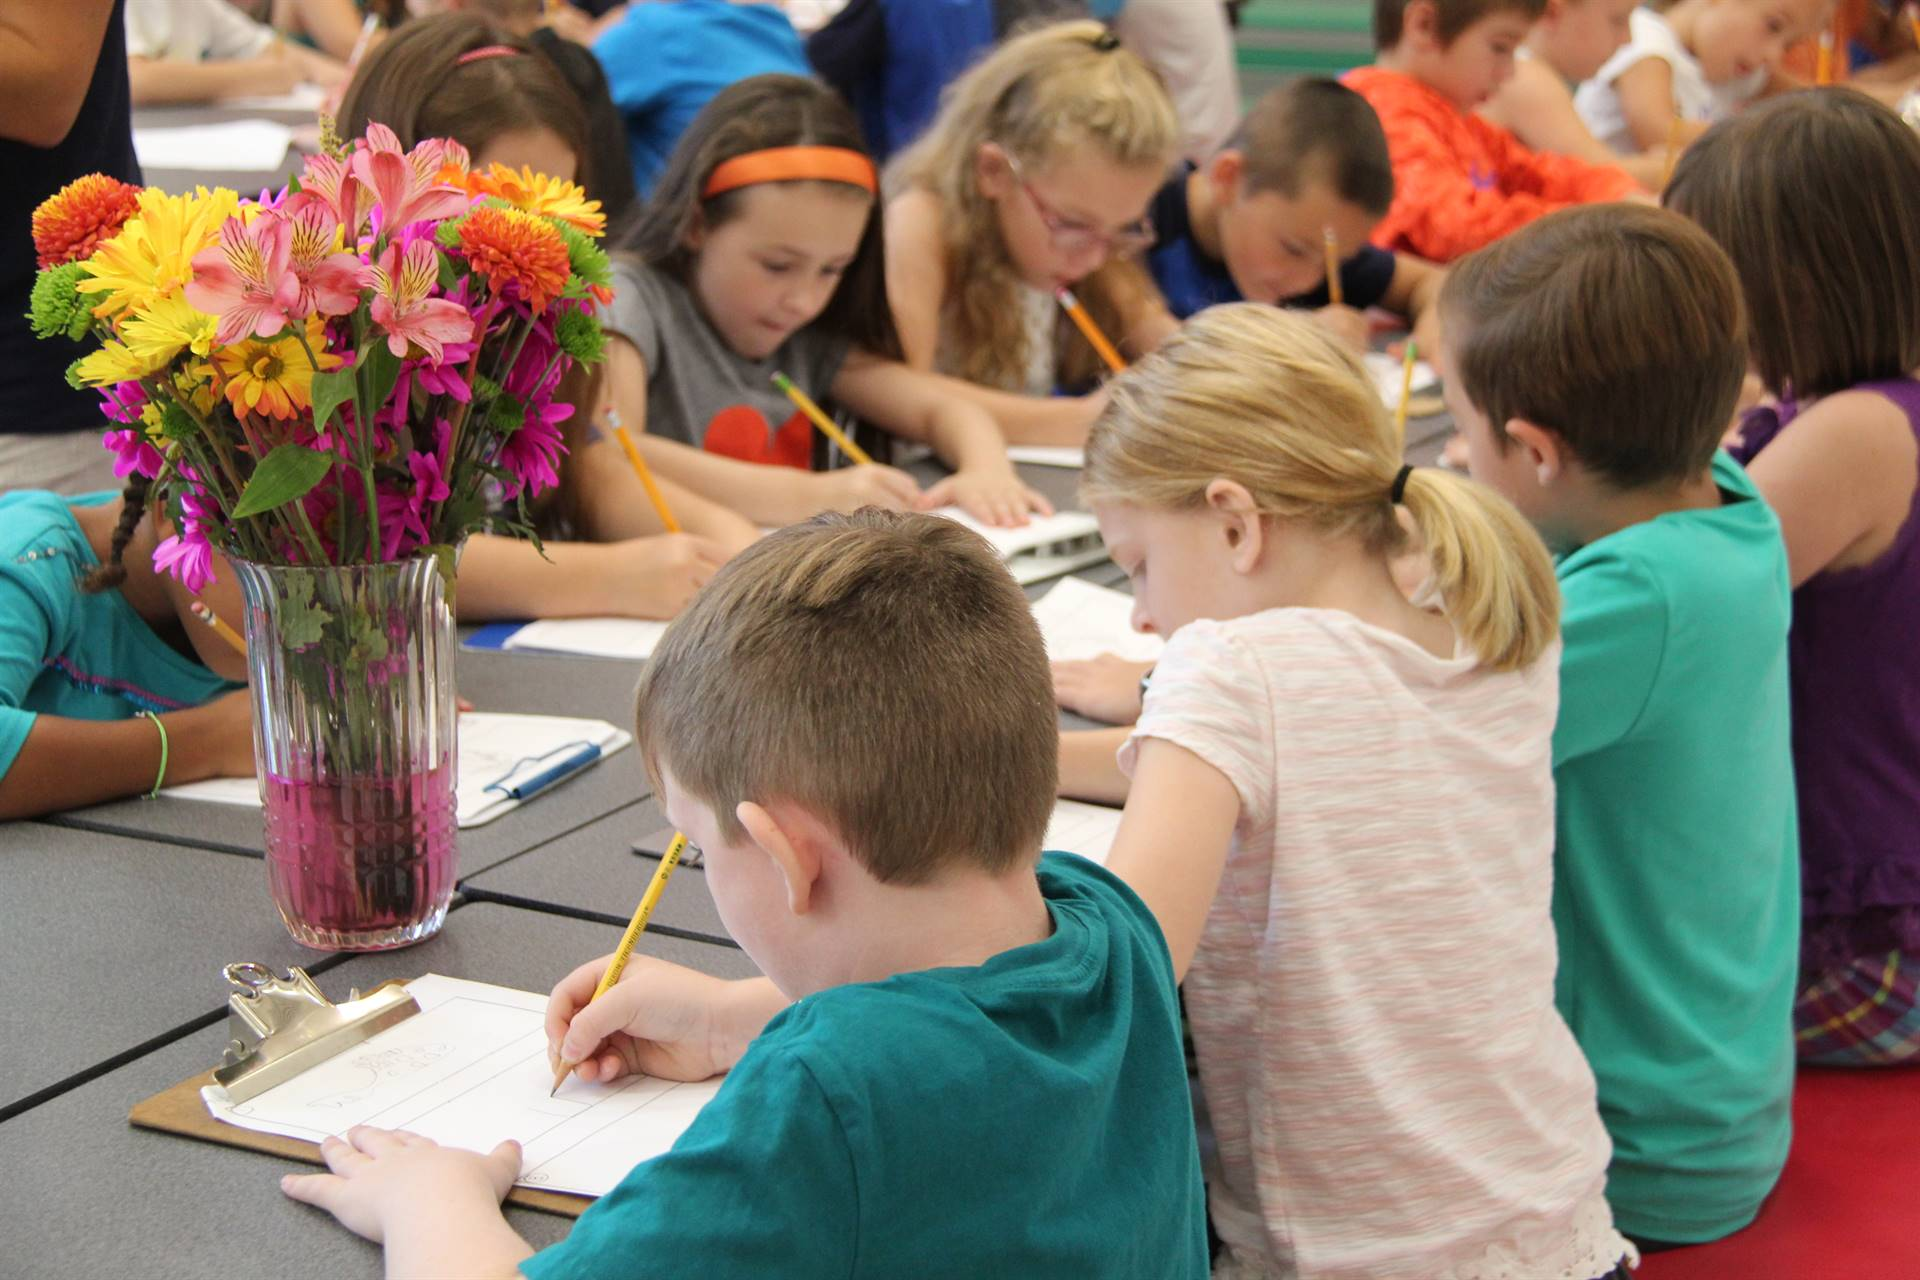 students sketch flowers